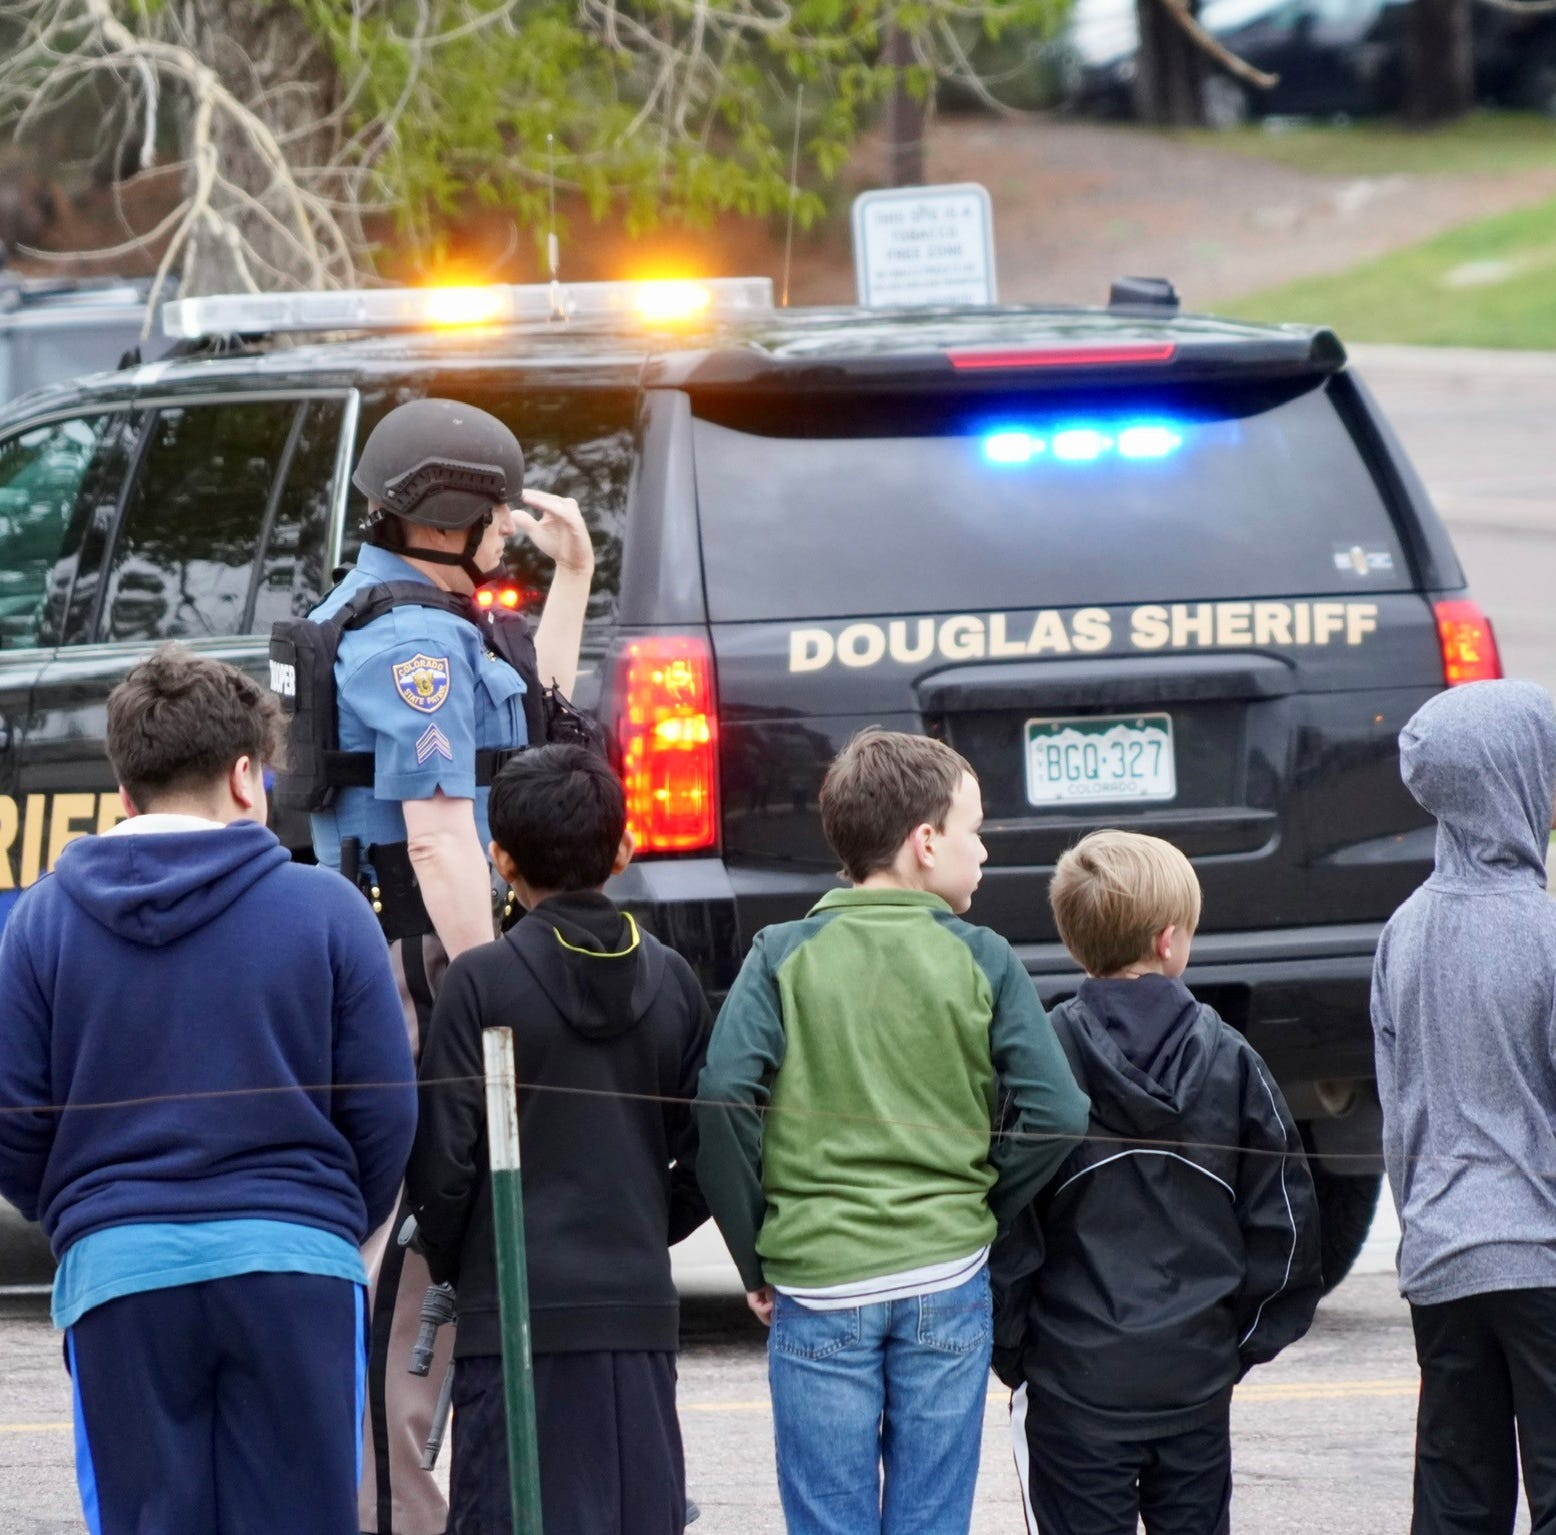 Colorado school shooting updates: Victim identified, heroes emerge. Here's what we know